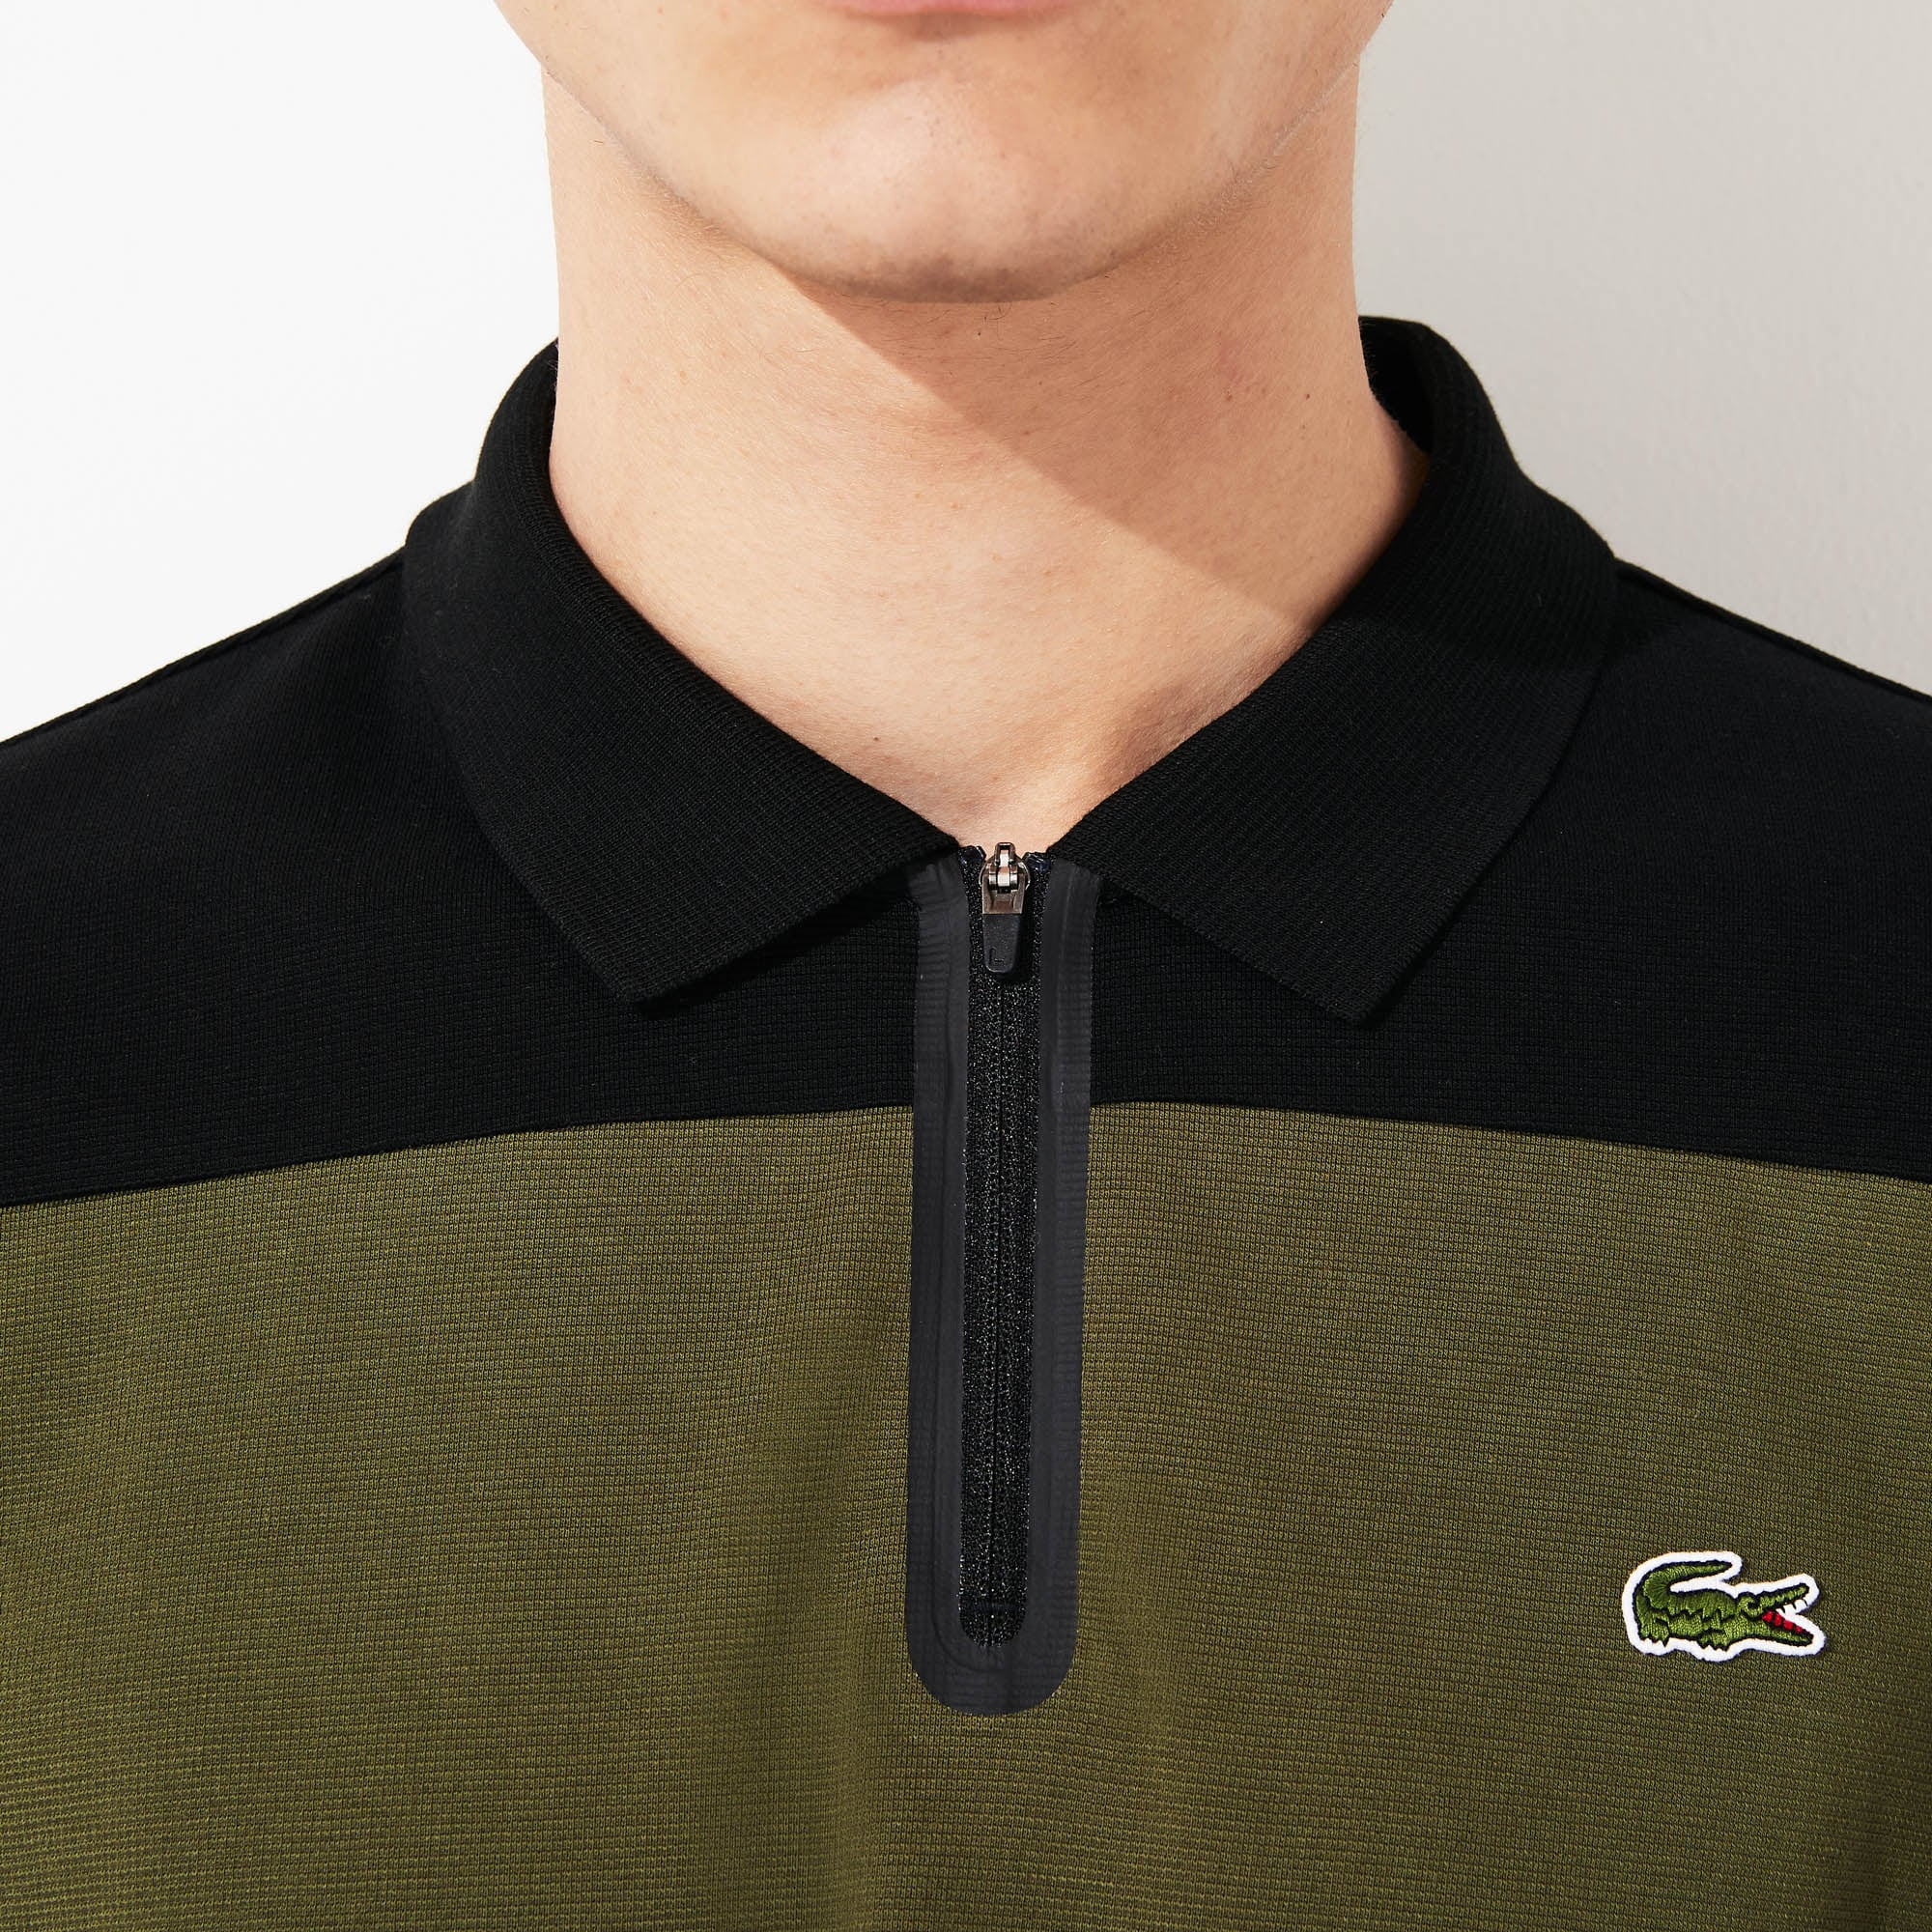 Men's Lacoste SPORT Ultra-Light Colourblock Cotton Zip Polo Shirt